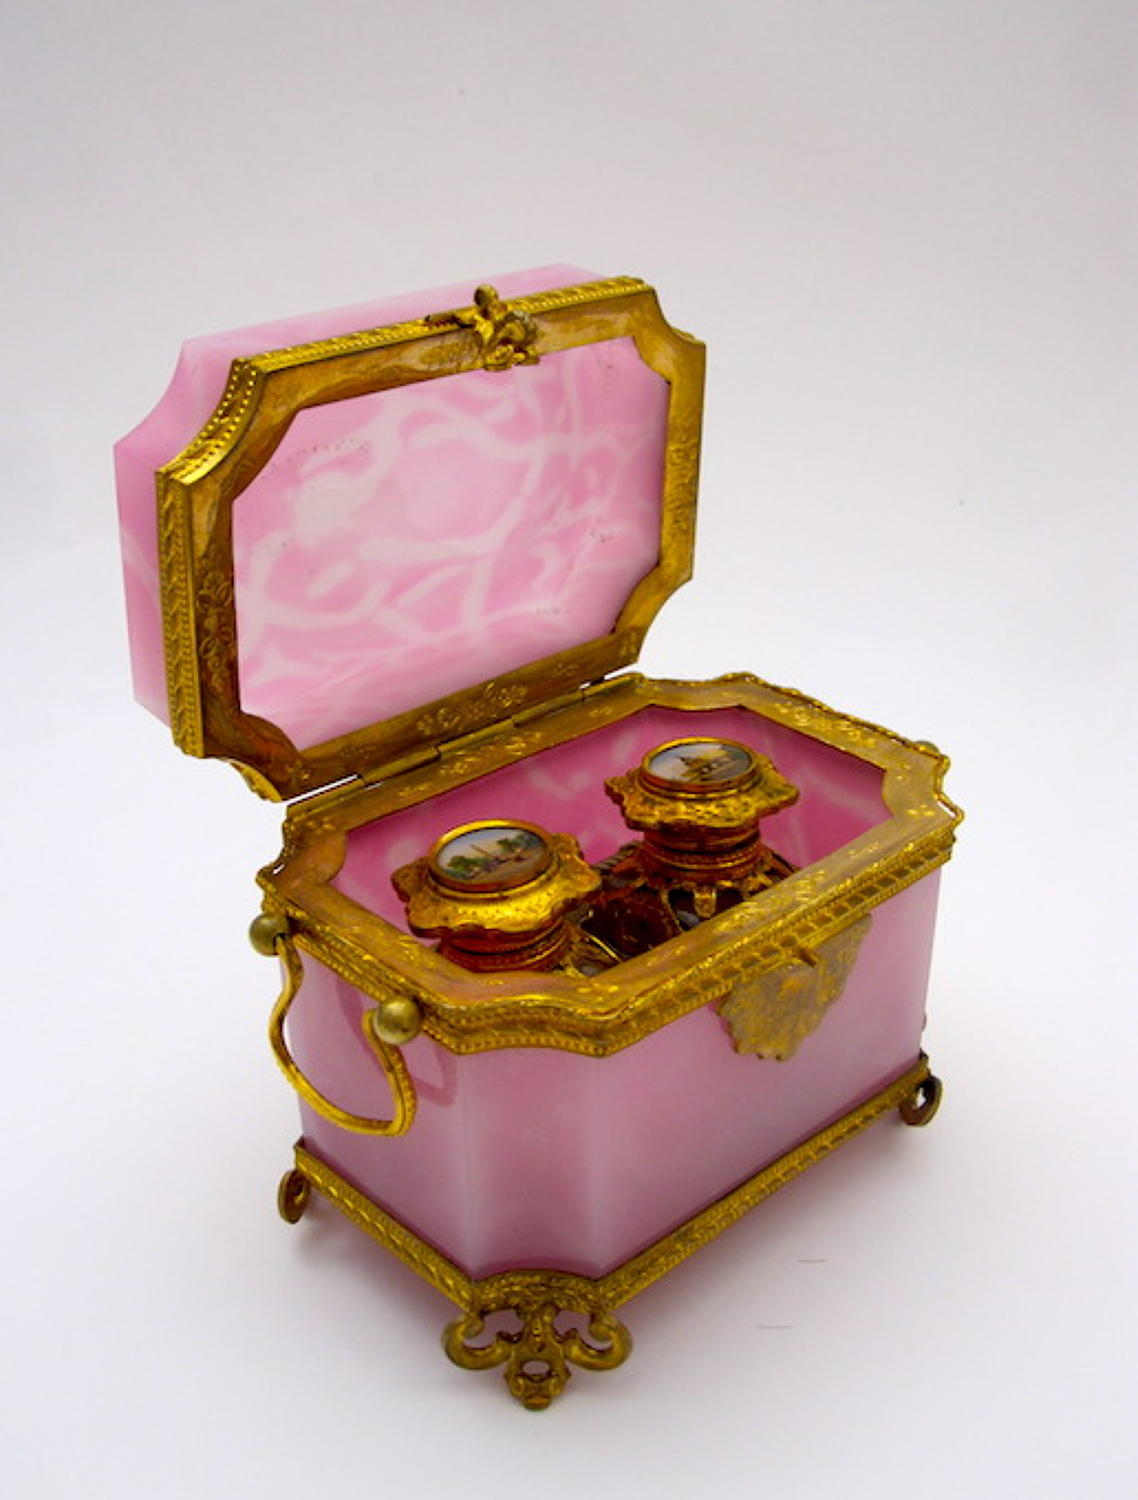 Rare Antique French Pink Opaline Glass Perfume Casket